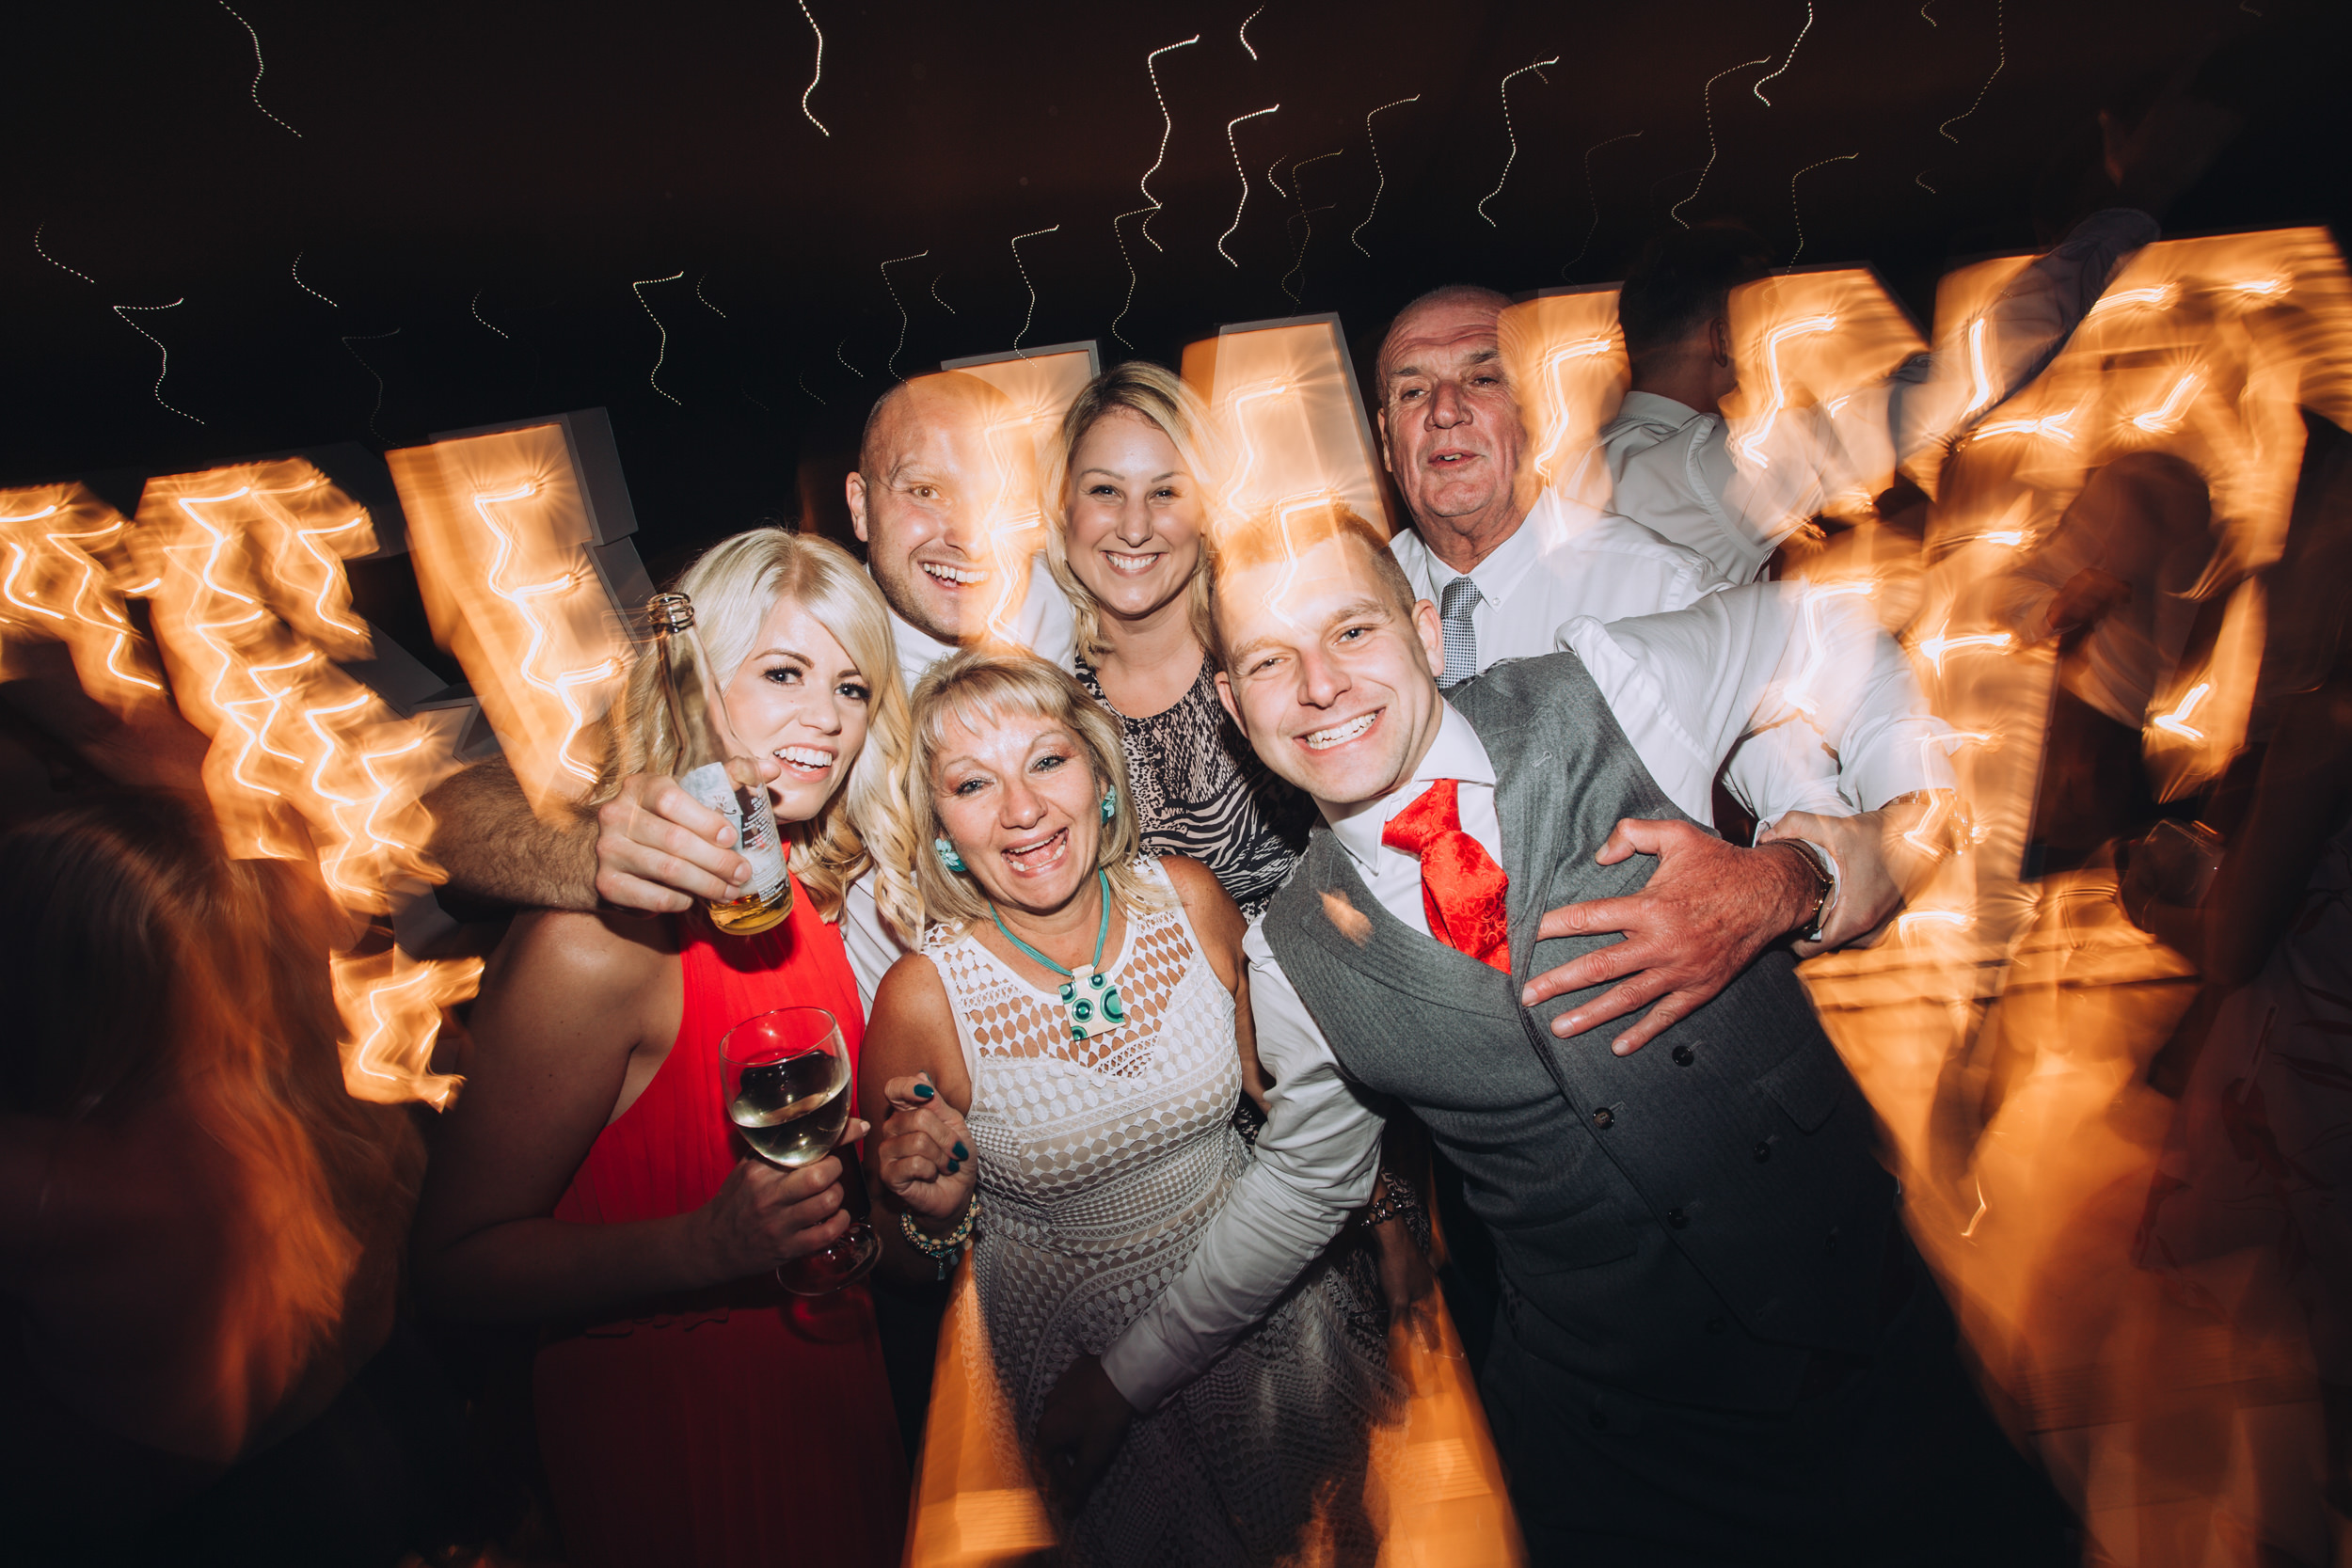 priory cottages wetherby wedding photographers88.jpg